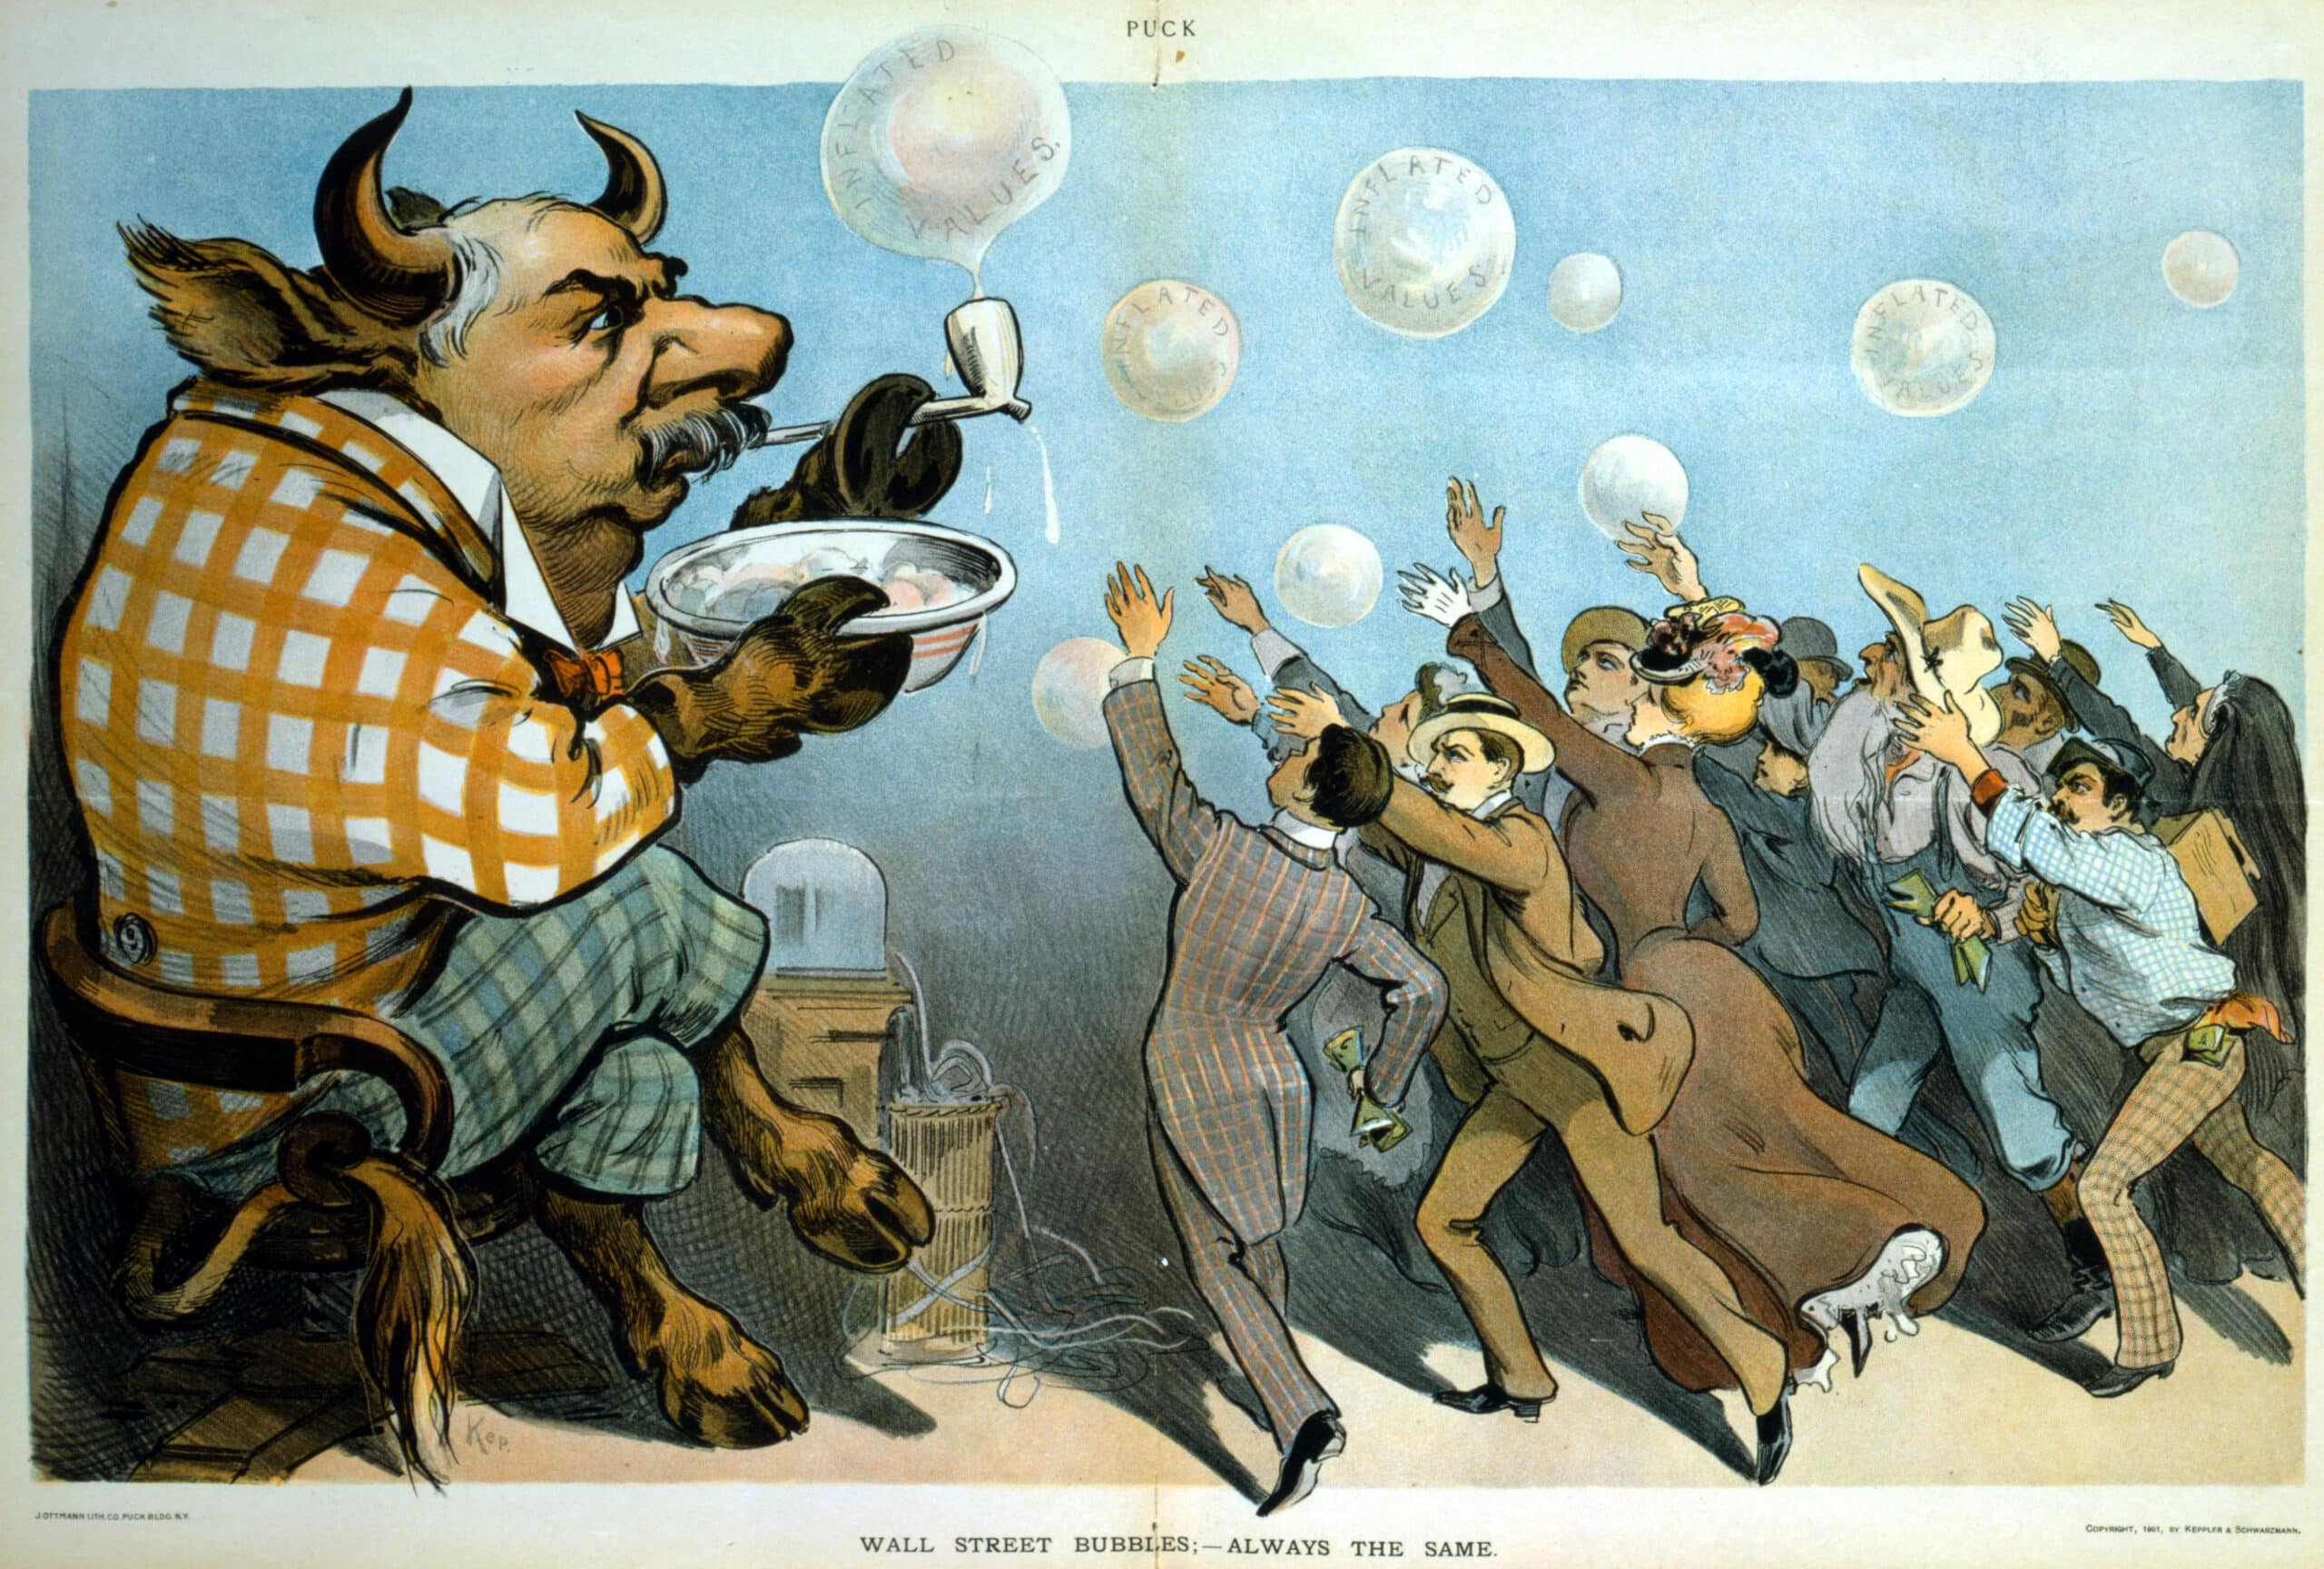 Wall Street Bubbles Cartoon, 1901